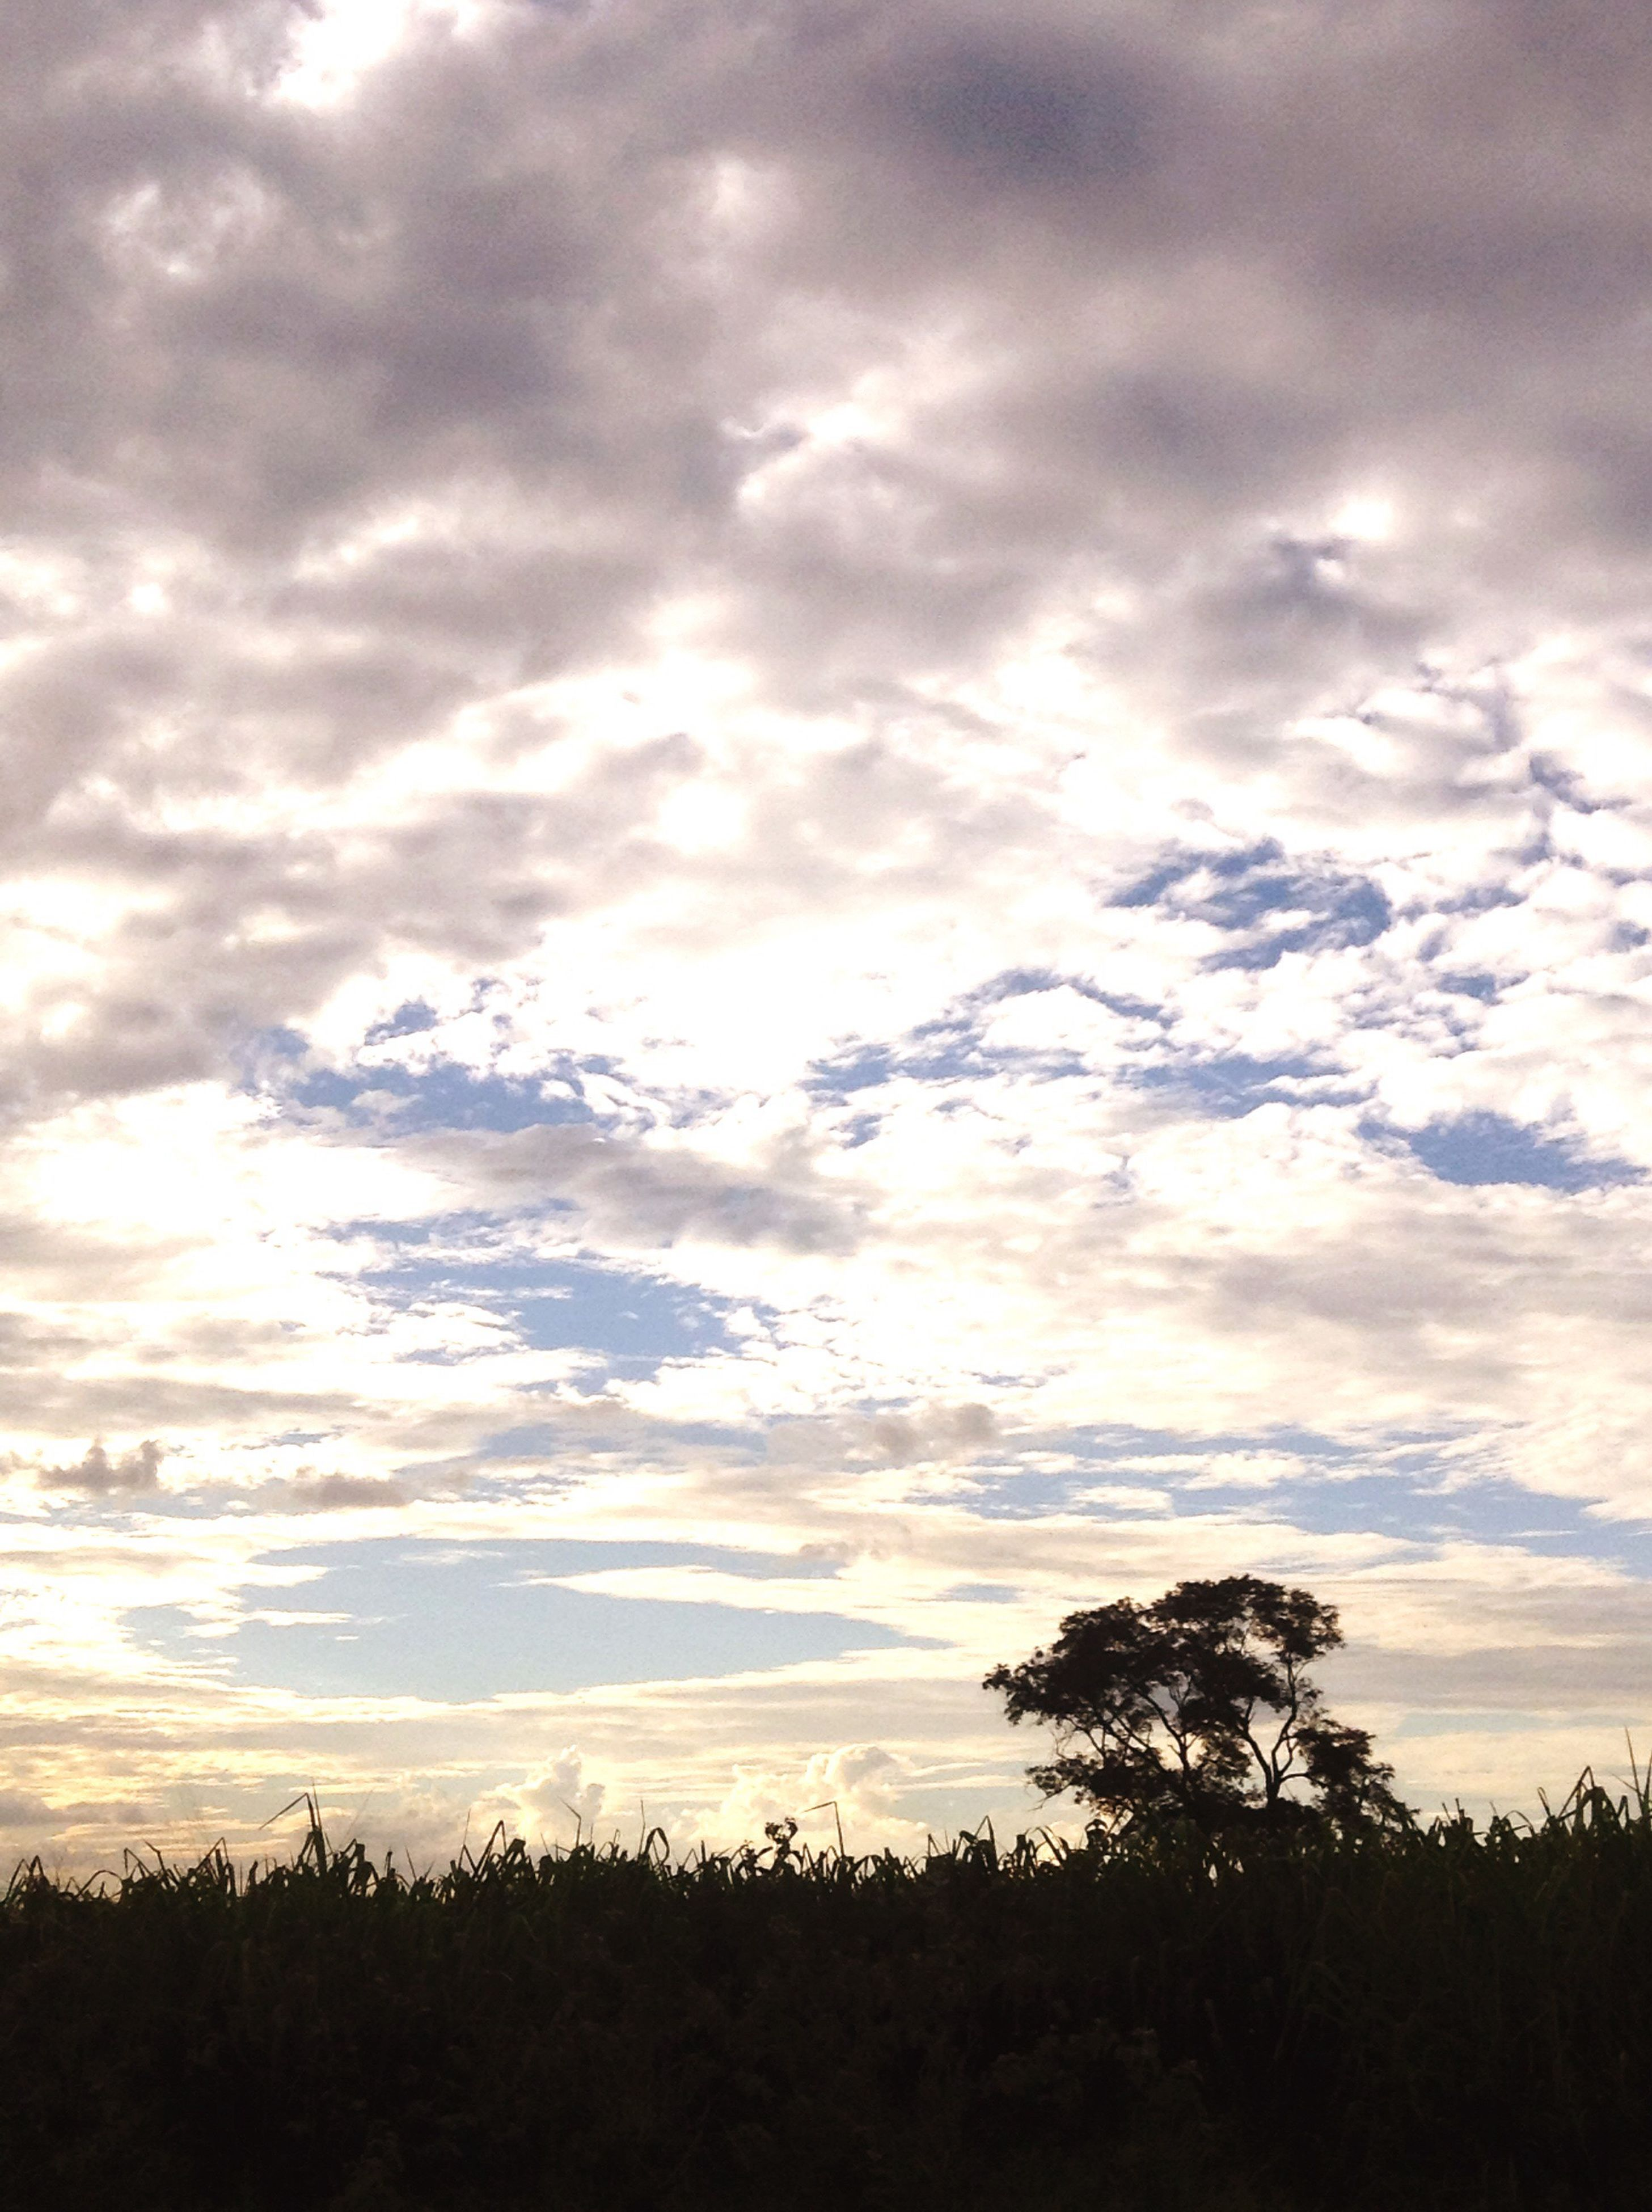 sky, cloud - sky, nature, sunset, beauty in nature, silhouette, scenics, tranquil scene, outdoors, idyllic, tranquility, no people, dramatic sky, growth, landscape, tree, freshness, day